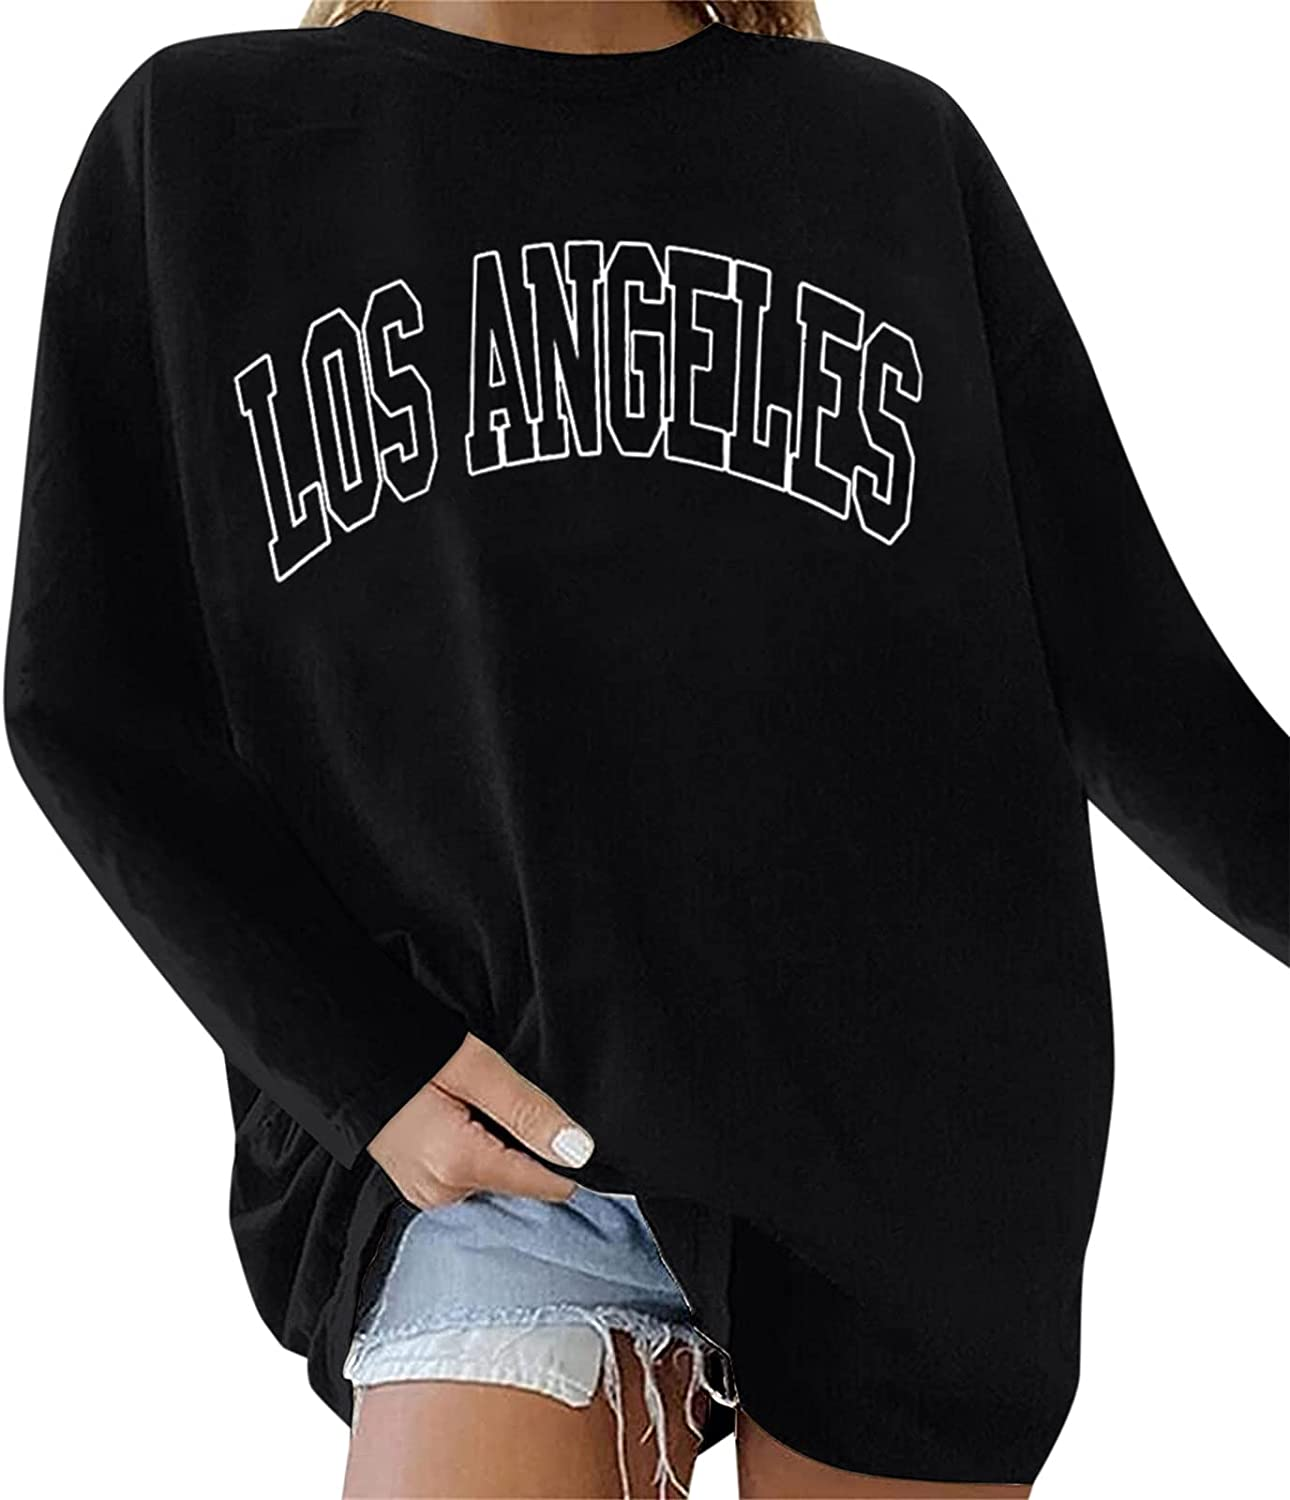 UOCUFY Sweatshirts for Women, Womens Long Sleeve Sweatshirts Casual Cute Graphic Crewneck Pullover Tops and Blouses